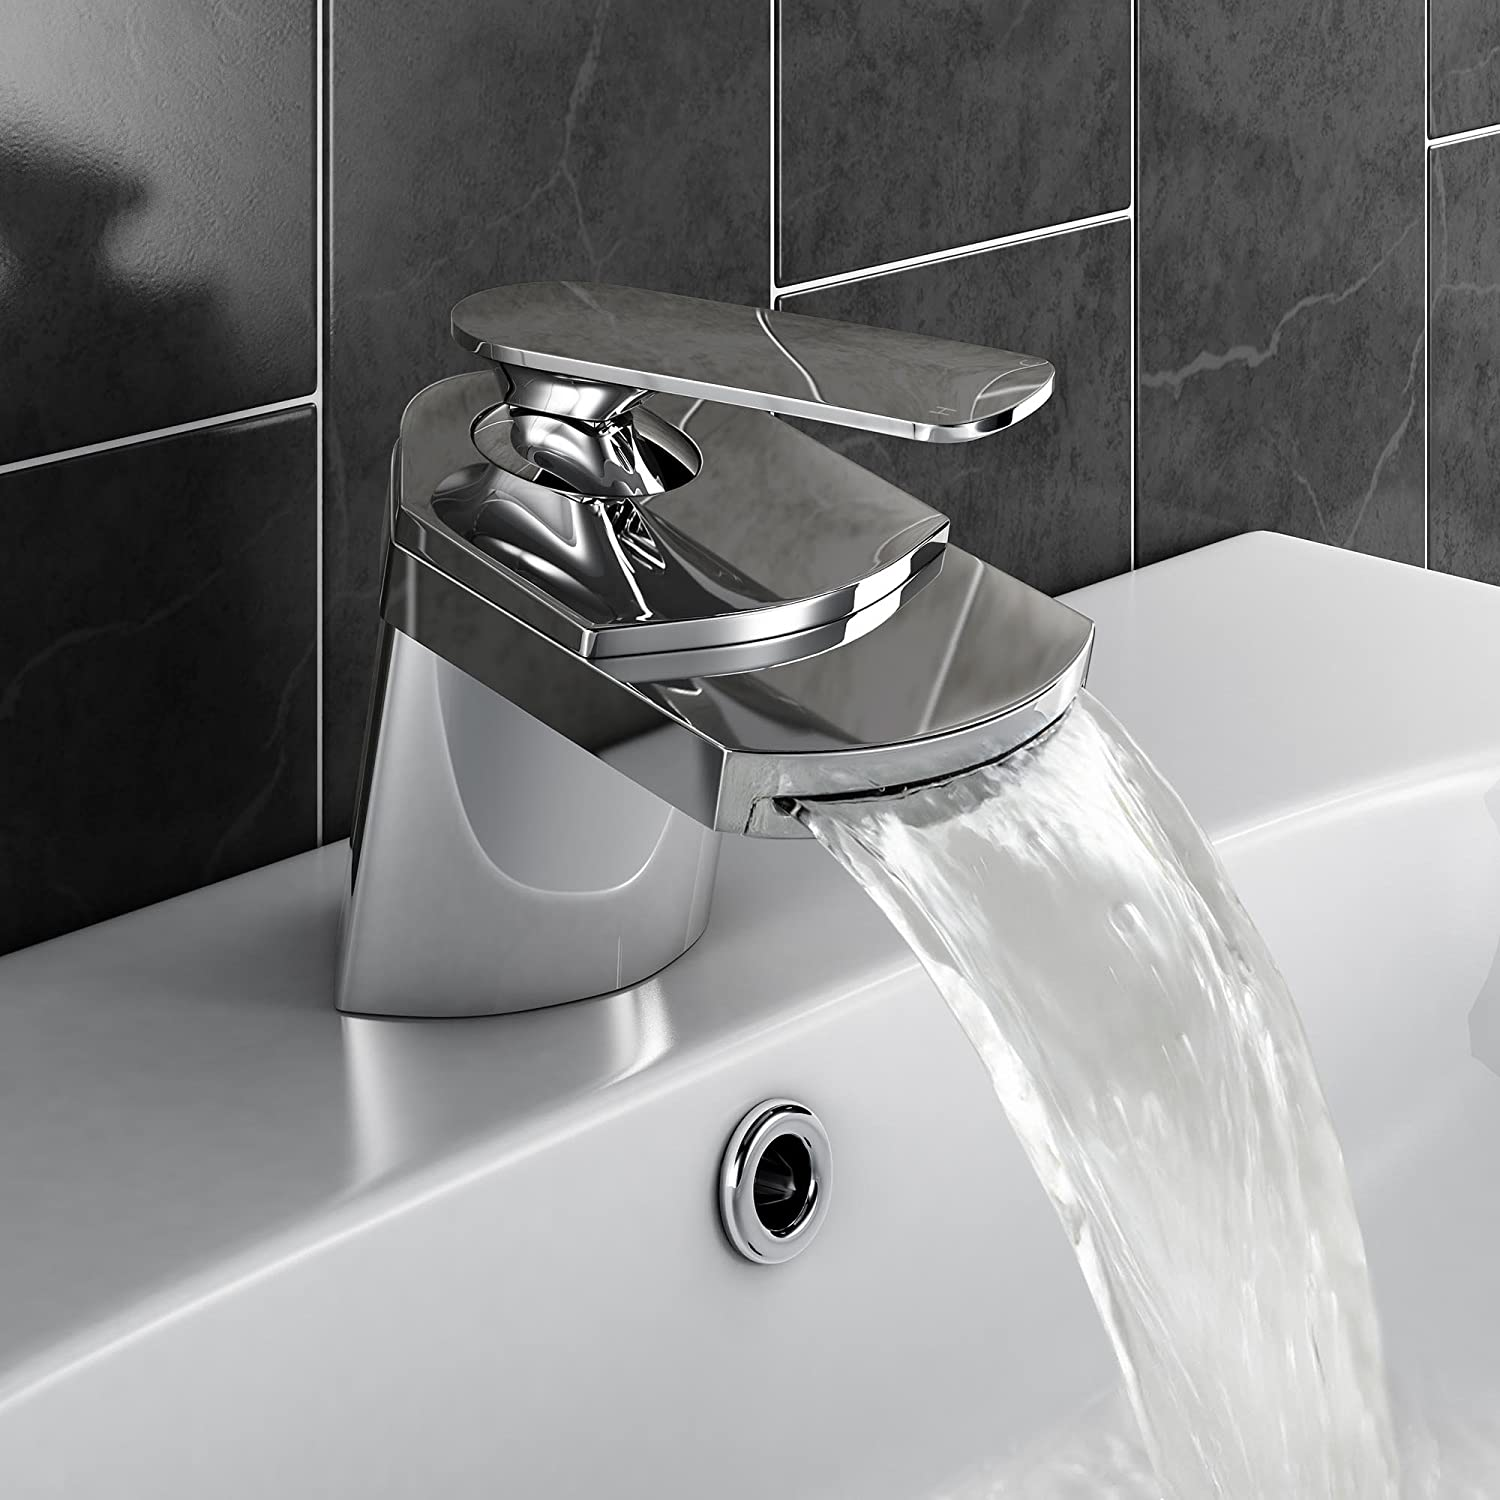 Modern Waterfall Basin Sink Mixer Tap Chrome Bathroom Lever Faucet...